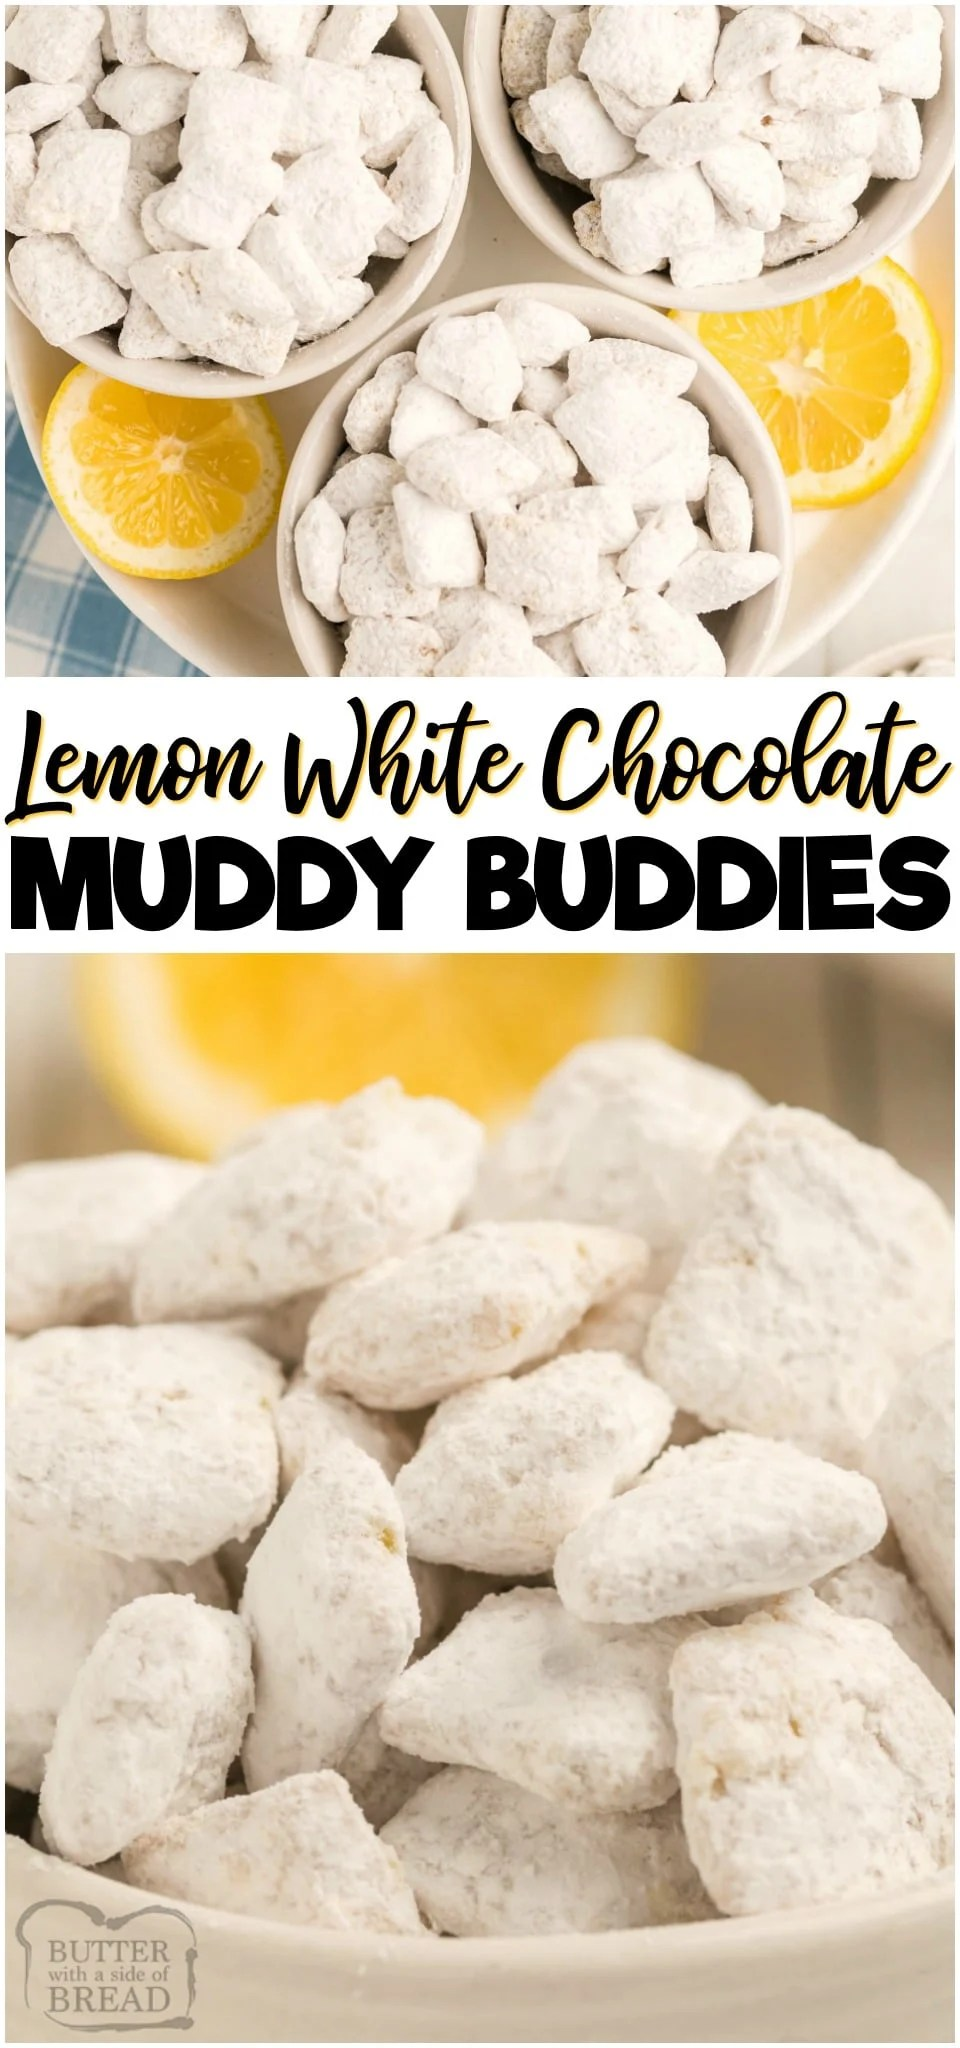 Lemon Muddy Buddy recipe made with lemon pudding mix, sweetened condensed milk, white chocolate and powdered sugar. These bite-sized lemon treats are a huge crowd pleaser! #lemon #muddybuddy #chex #chexmix #dessert #nobake #recipe from BUTTER WITH A SIDE OF BREAD